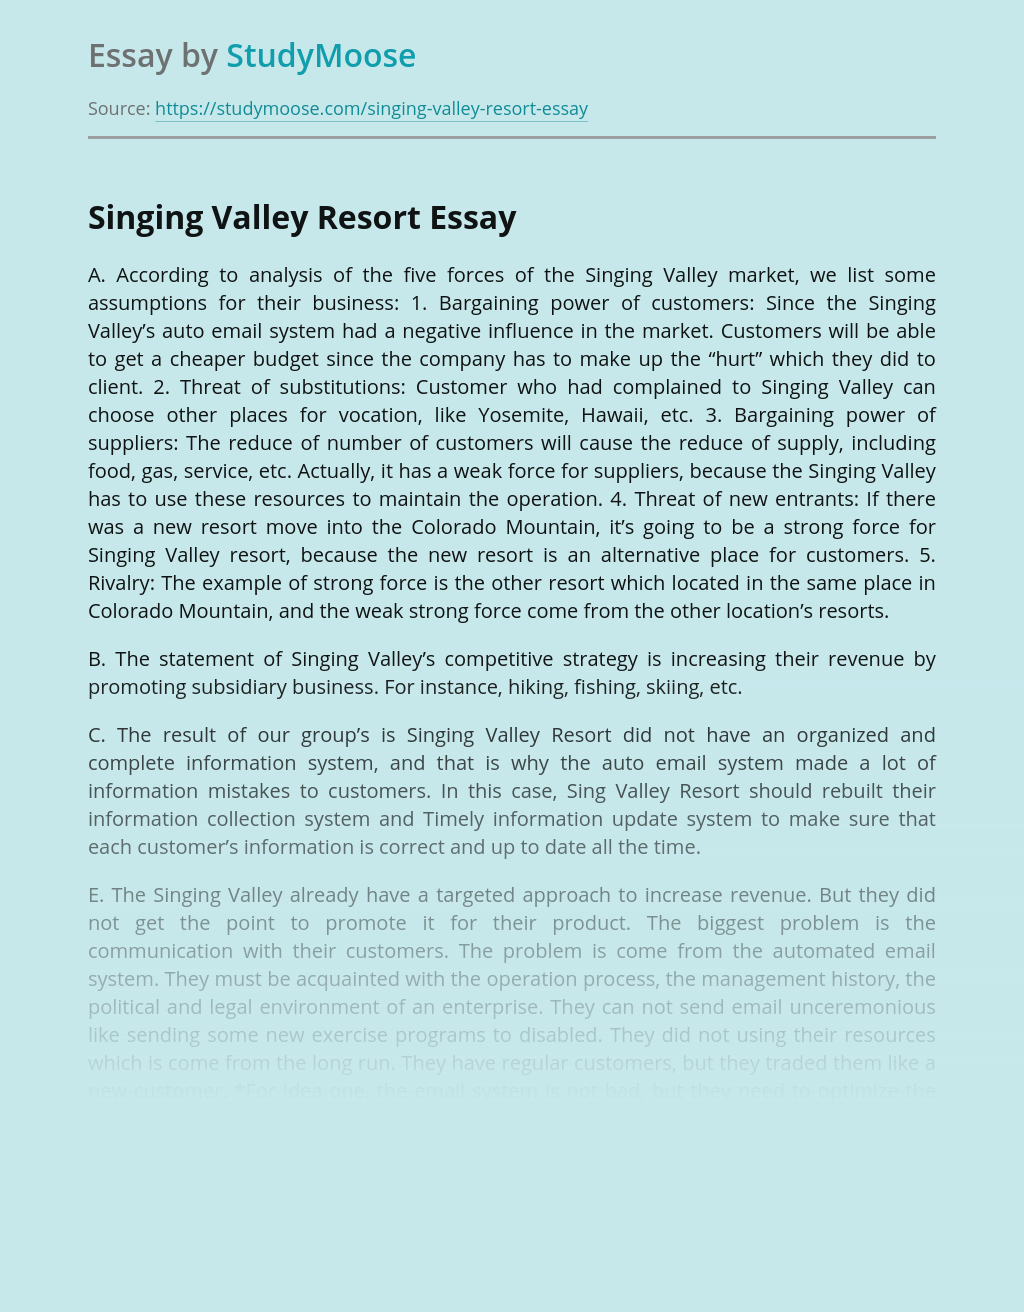 Singing Valley Resort Competitive Strategy